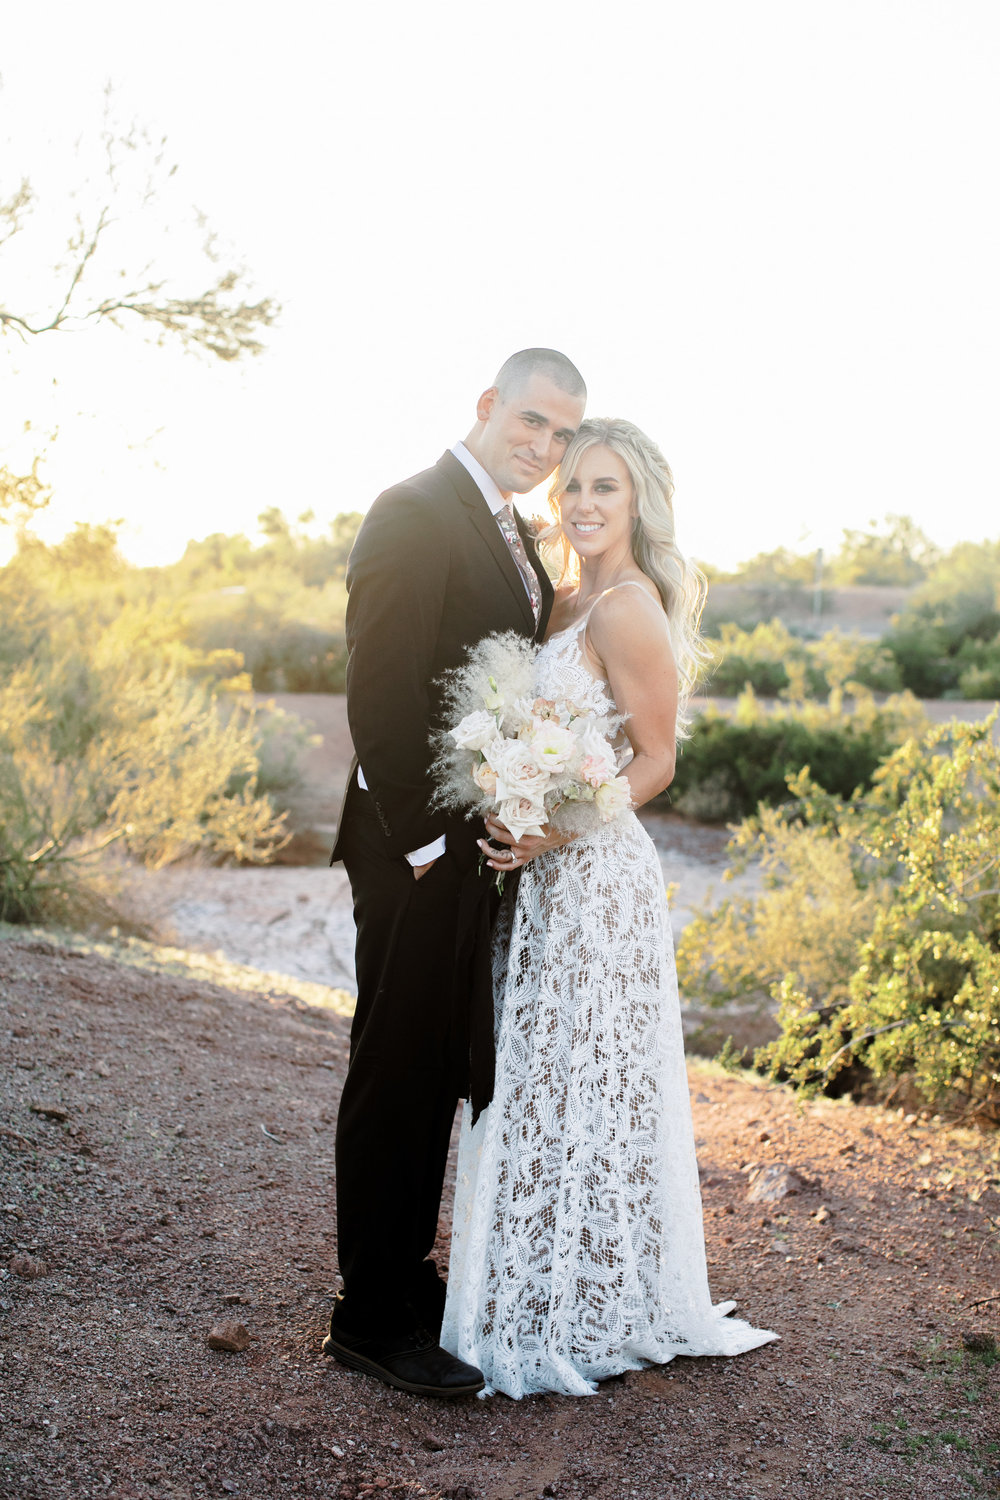 Black and Blush Fine Art Desert Wedding - Bride and Groom - Pampas Grass Bouquet